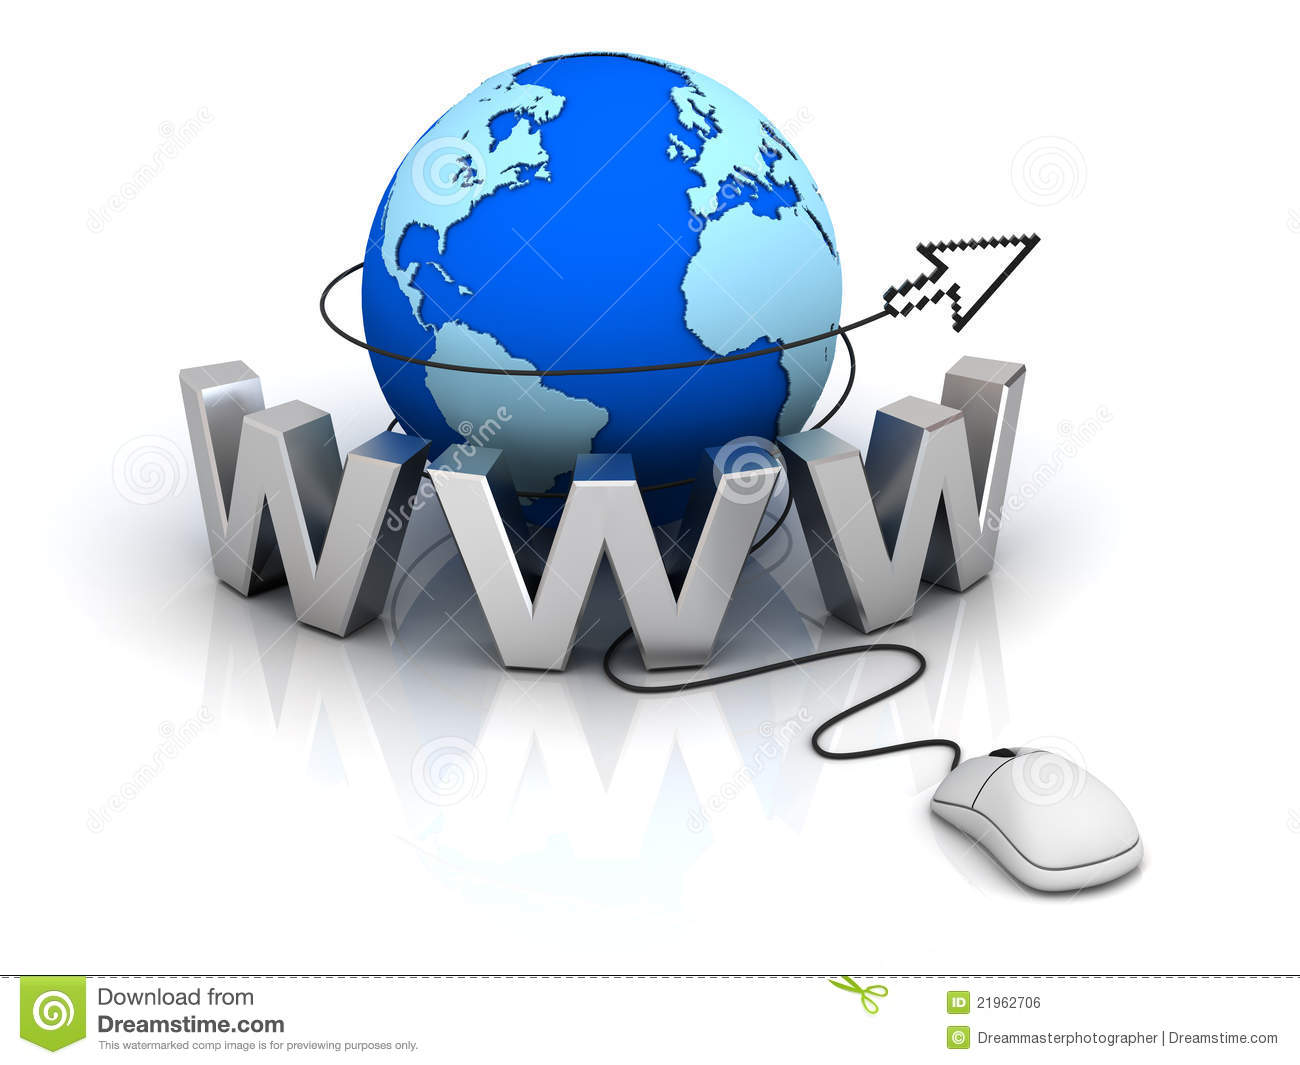 world-wide-web-internet-concept-21962706.jpg